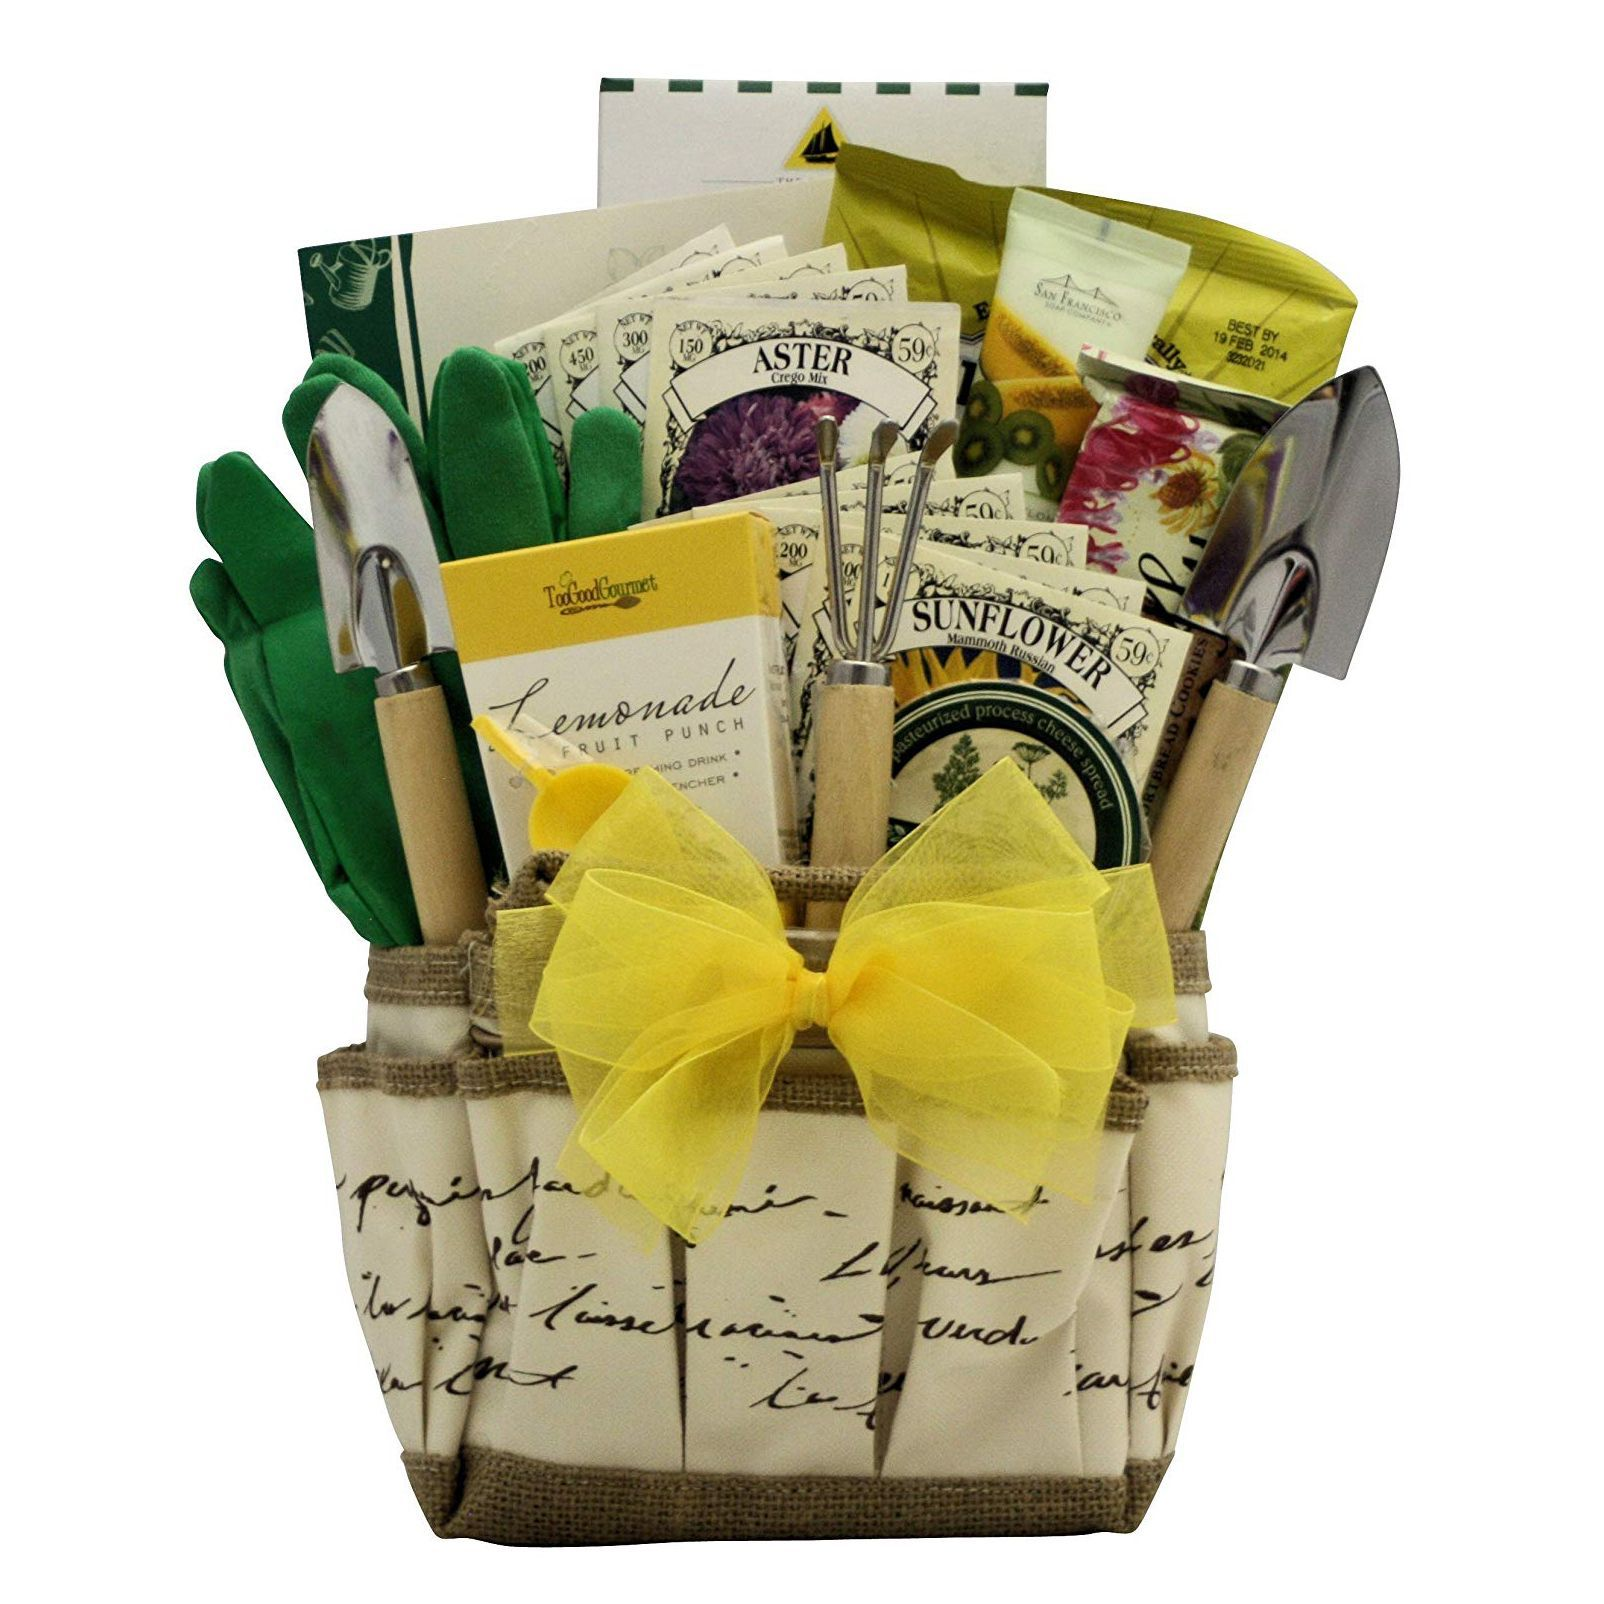 15+ Motheru0027s Day Gift Basket Ideas - Best Gift Baskets for Motheru0027s Day for EVERY Mom  sc 1 st  Good Housekeeping & 15+ Motheru0027s Day Gift Basket Ideas - Best Gift Baskets for Motheru0027s ...